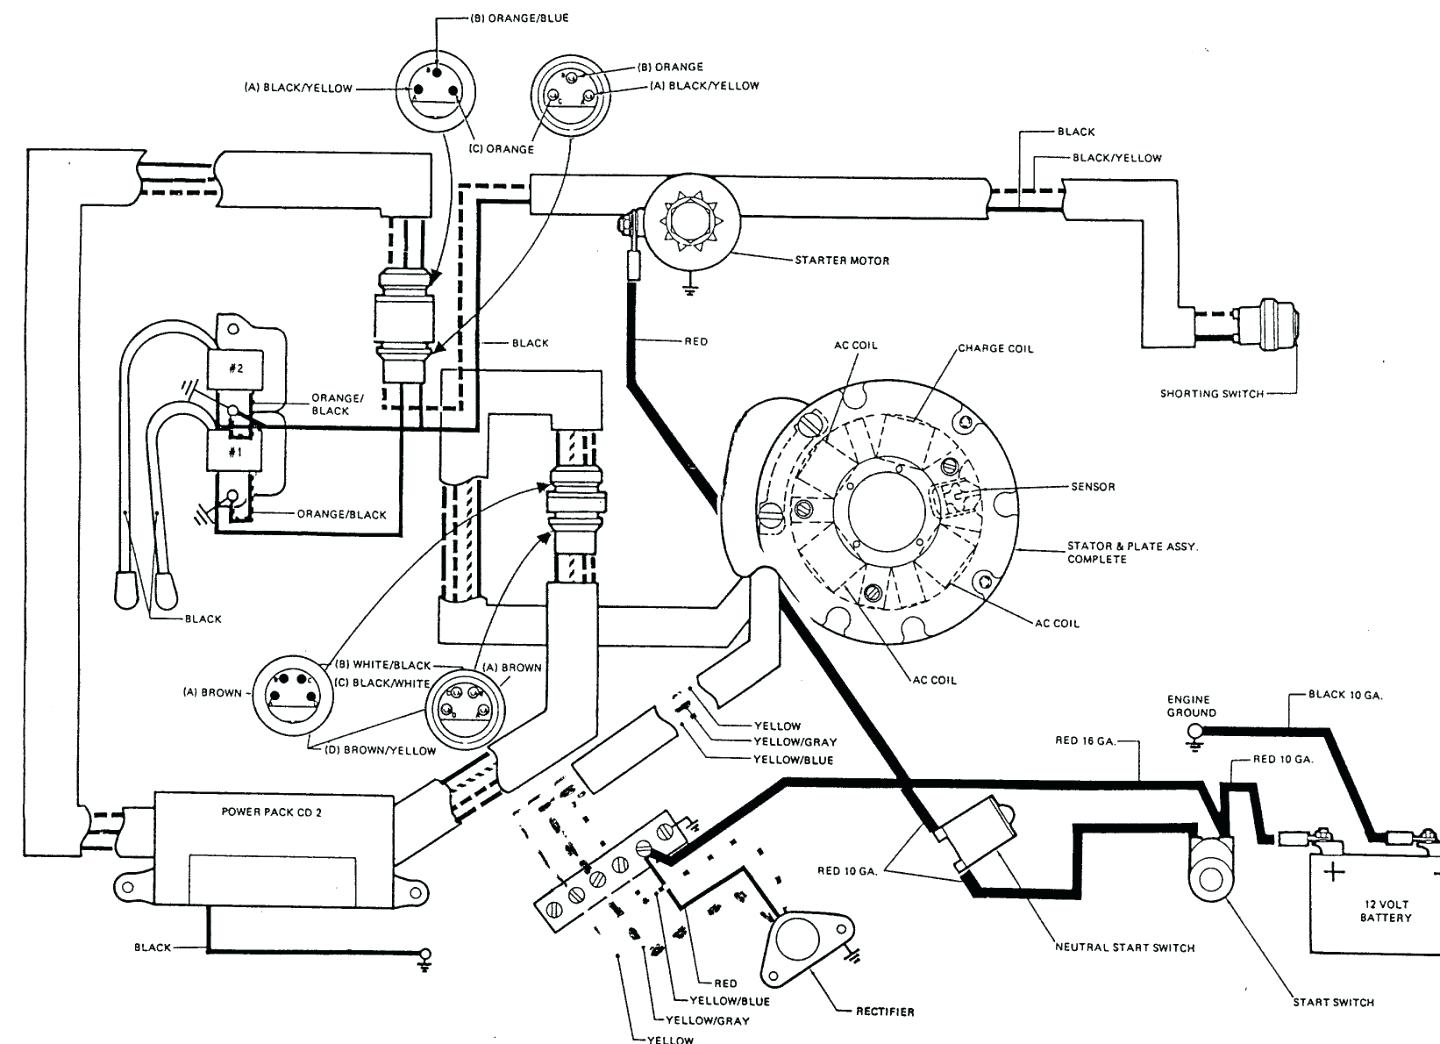 1440x1044 25 hp kohler engine wiring diagram with notes ignition electrical